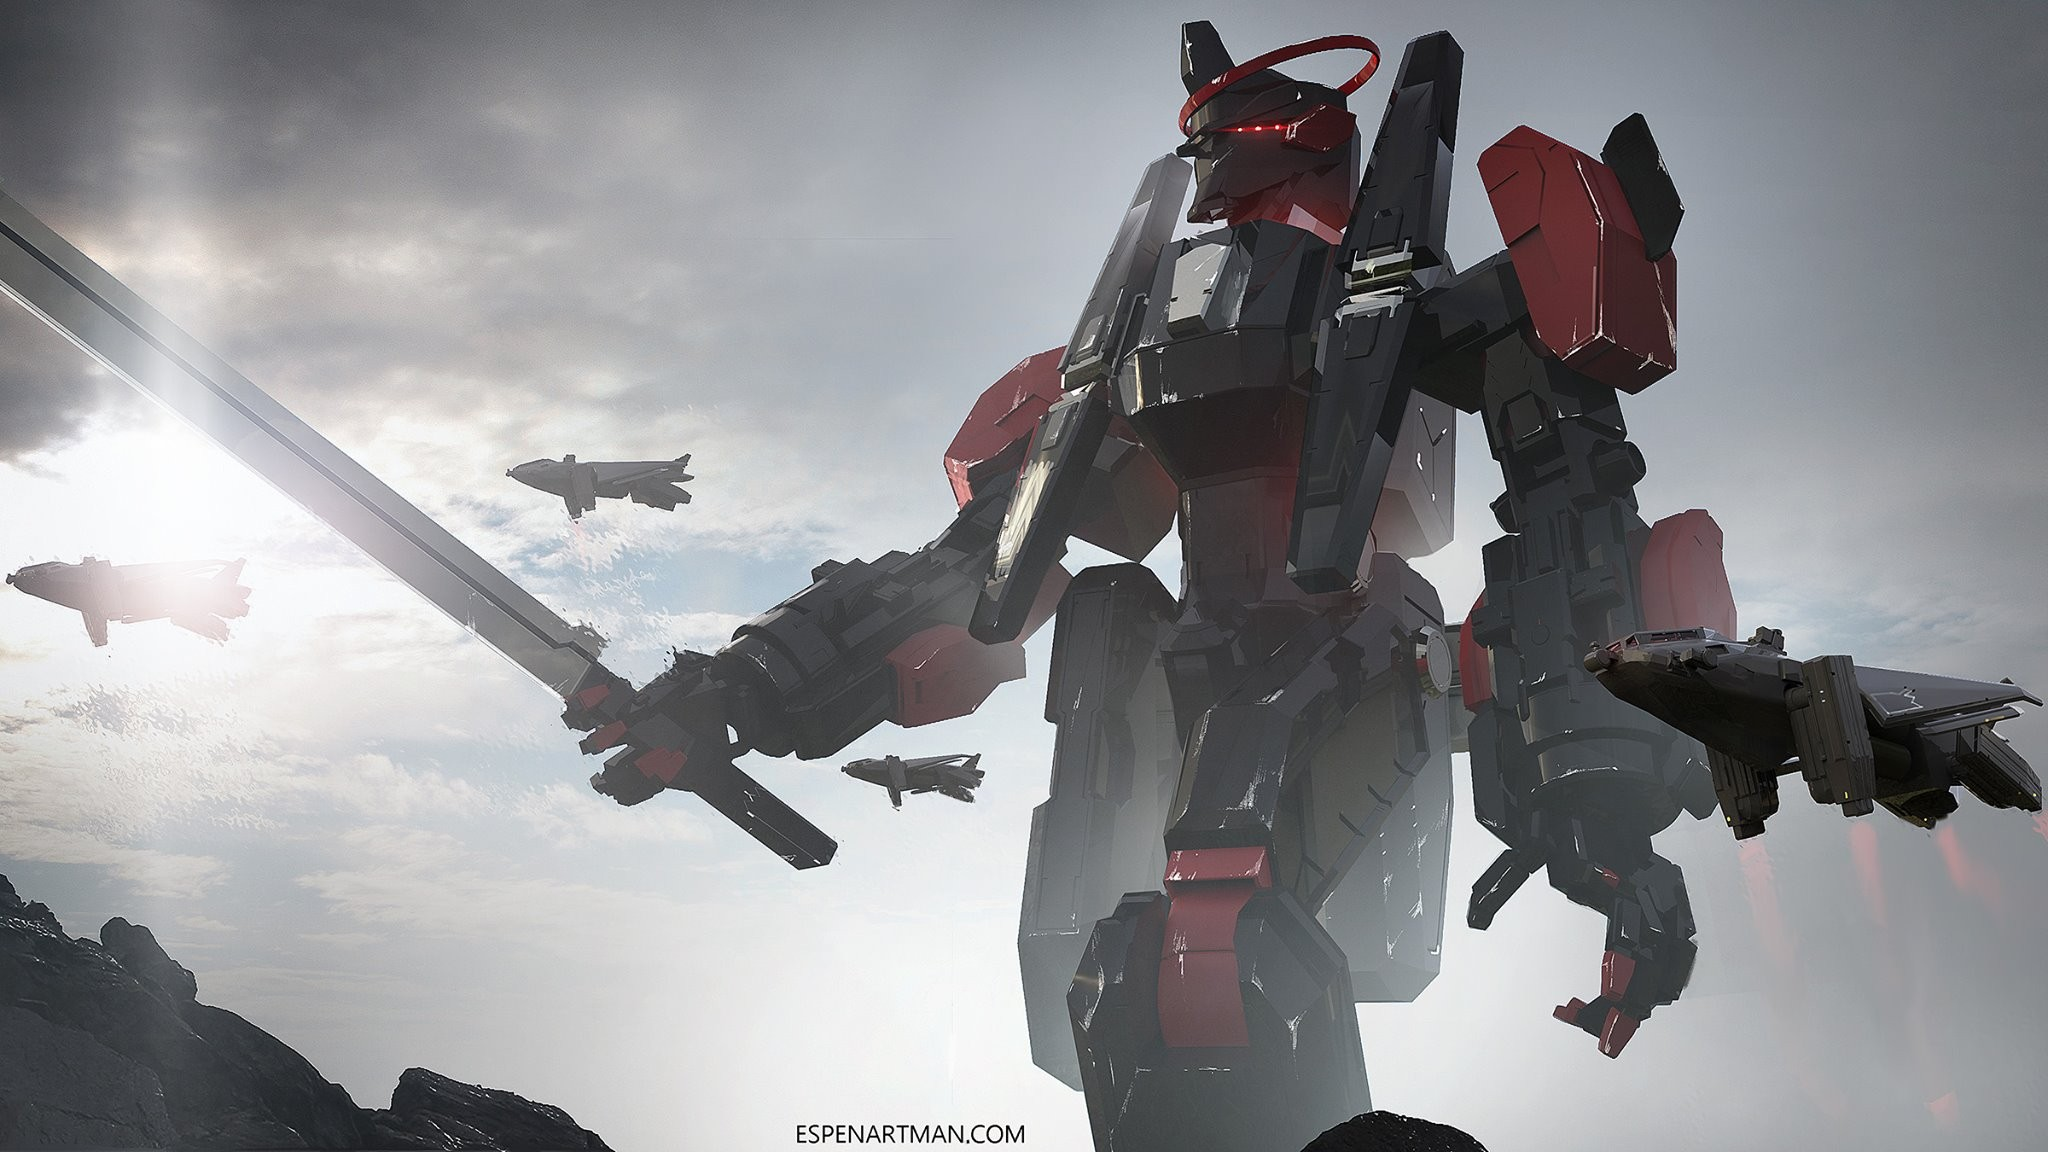 General-x-robot-sword-mech-wallpaper-wp3406200